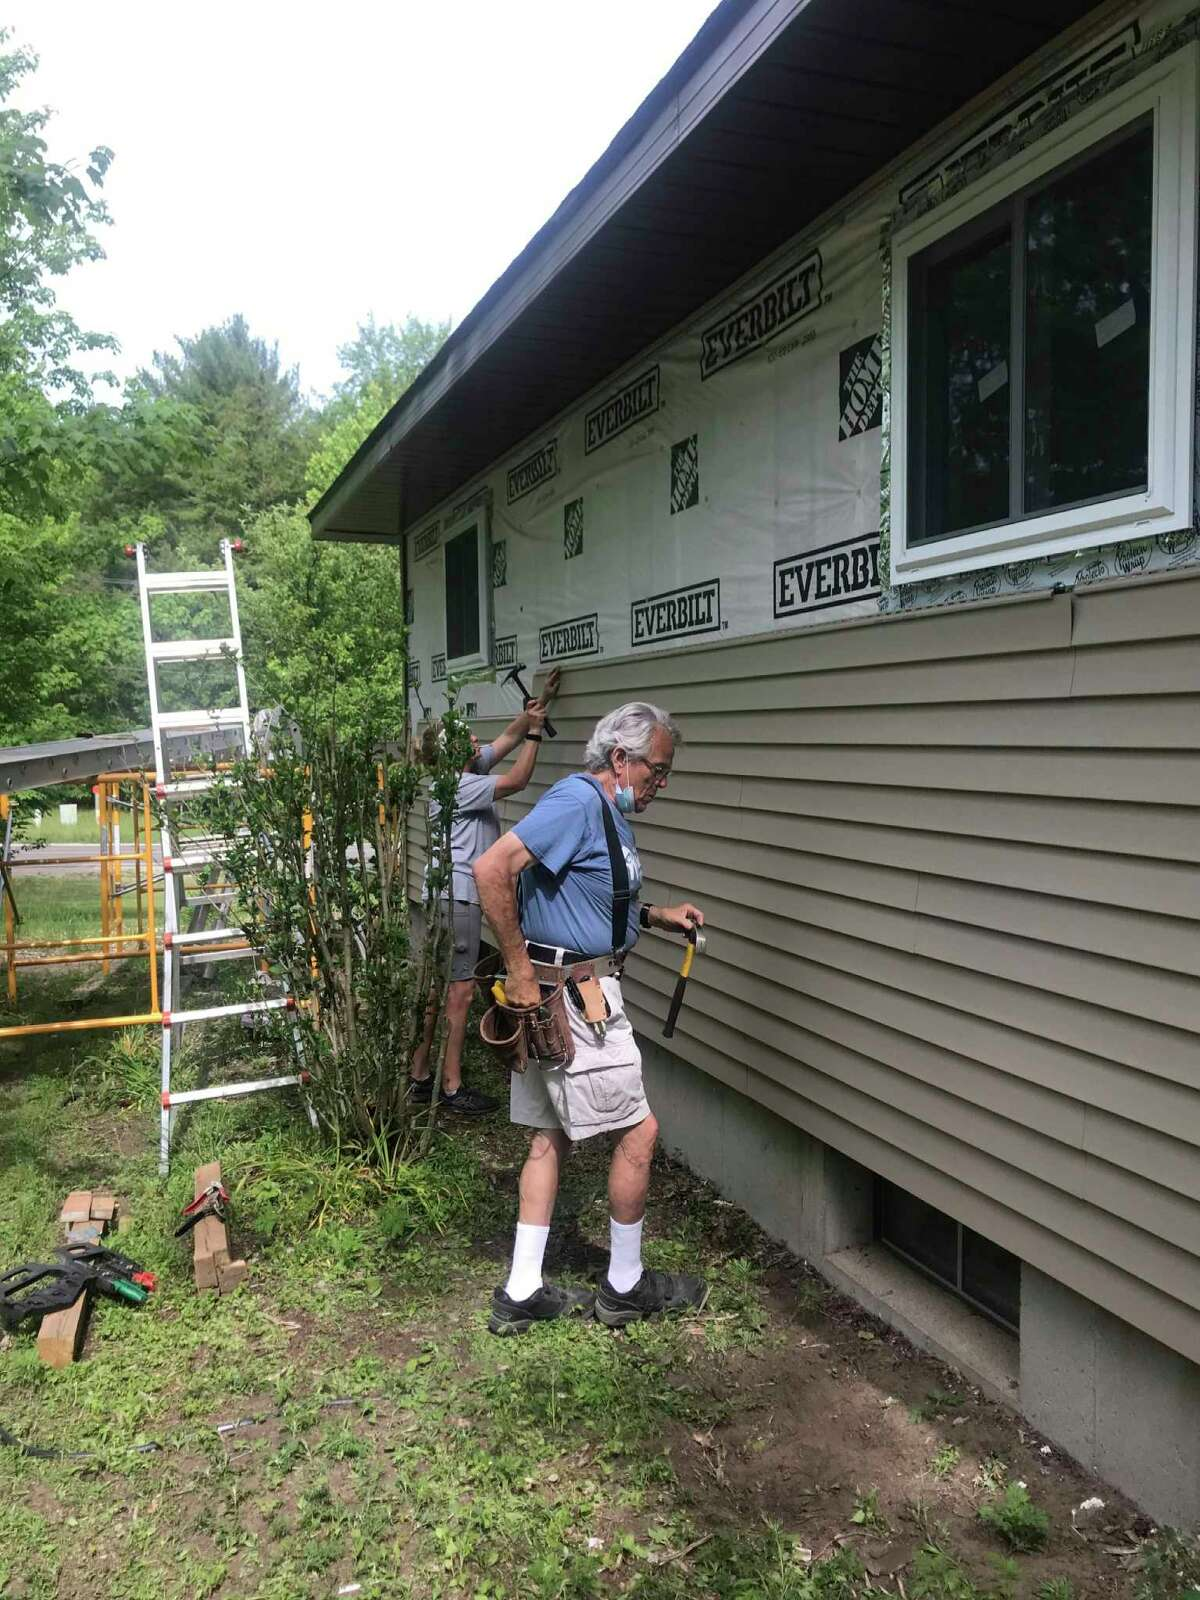 Volunteer Ken Smith helps with a remodel project at Habitat for Humanity. Smith volunteers on builds and at the Restore in Big Rapids, as well as serving on the American Red Cross disaster aid team. (Submitted photo)